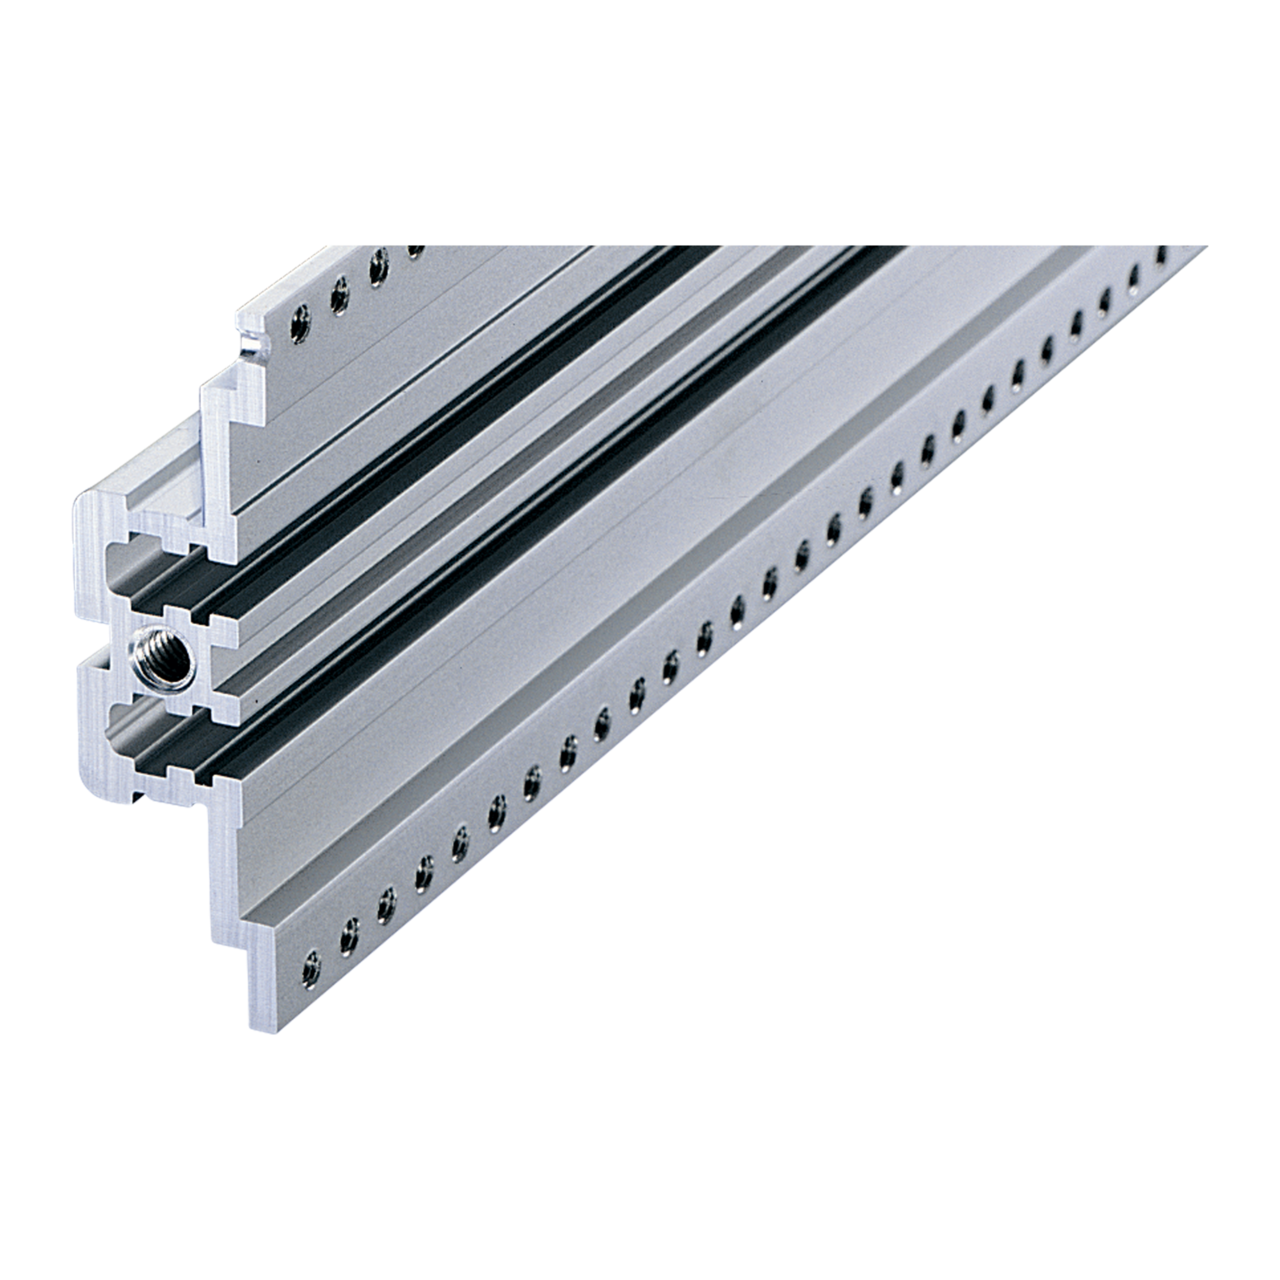 Image for Horizontal rail, rear, center, type MZ from Schroff - Asia Pacific